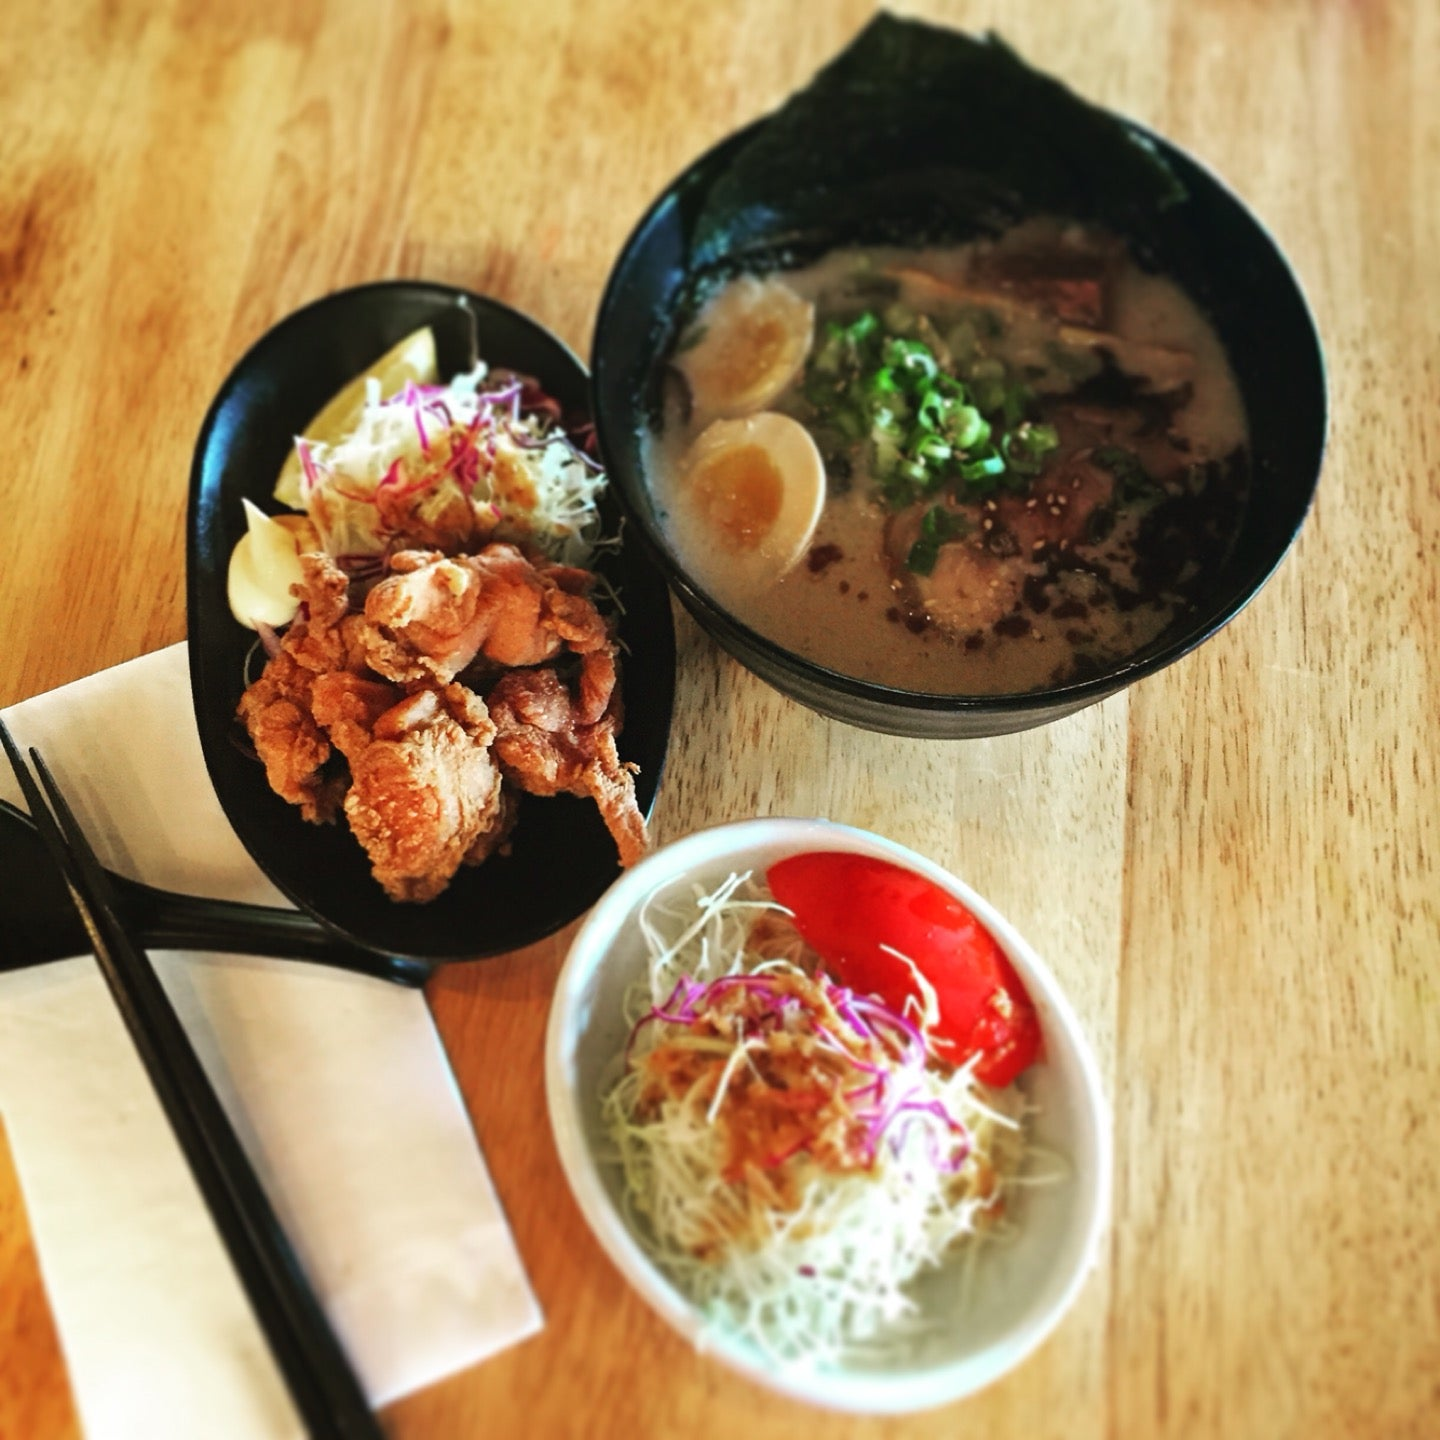 Chashu and pork belly